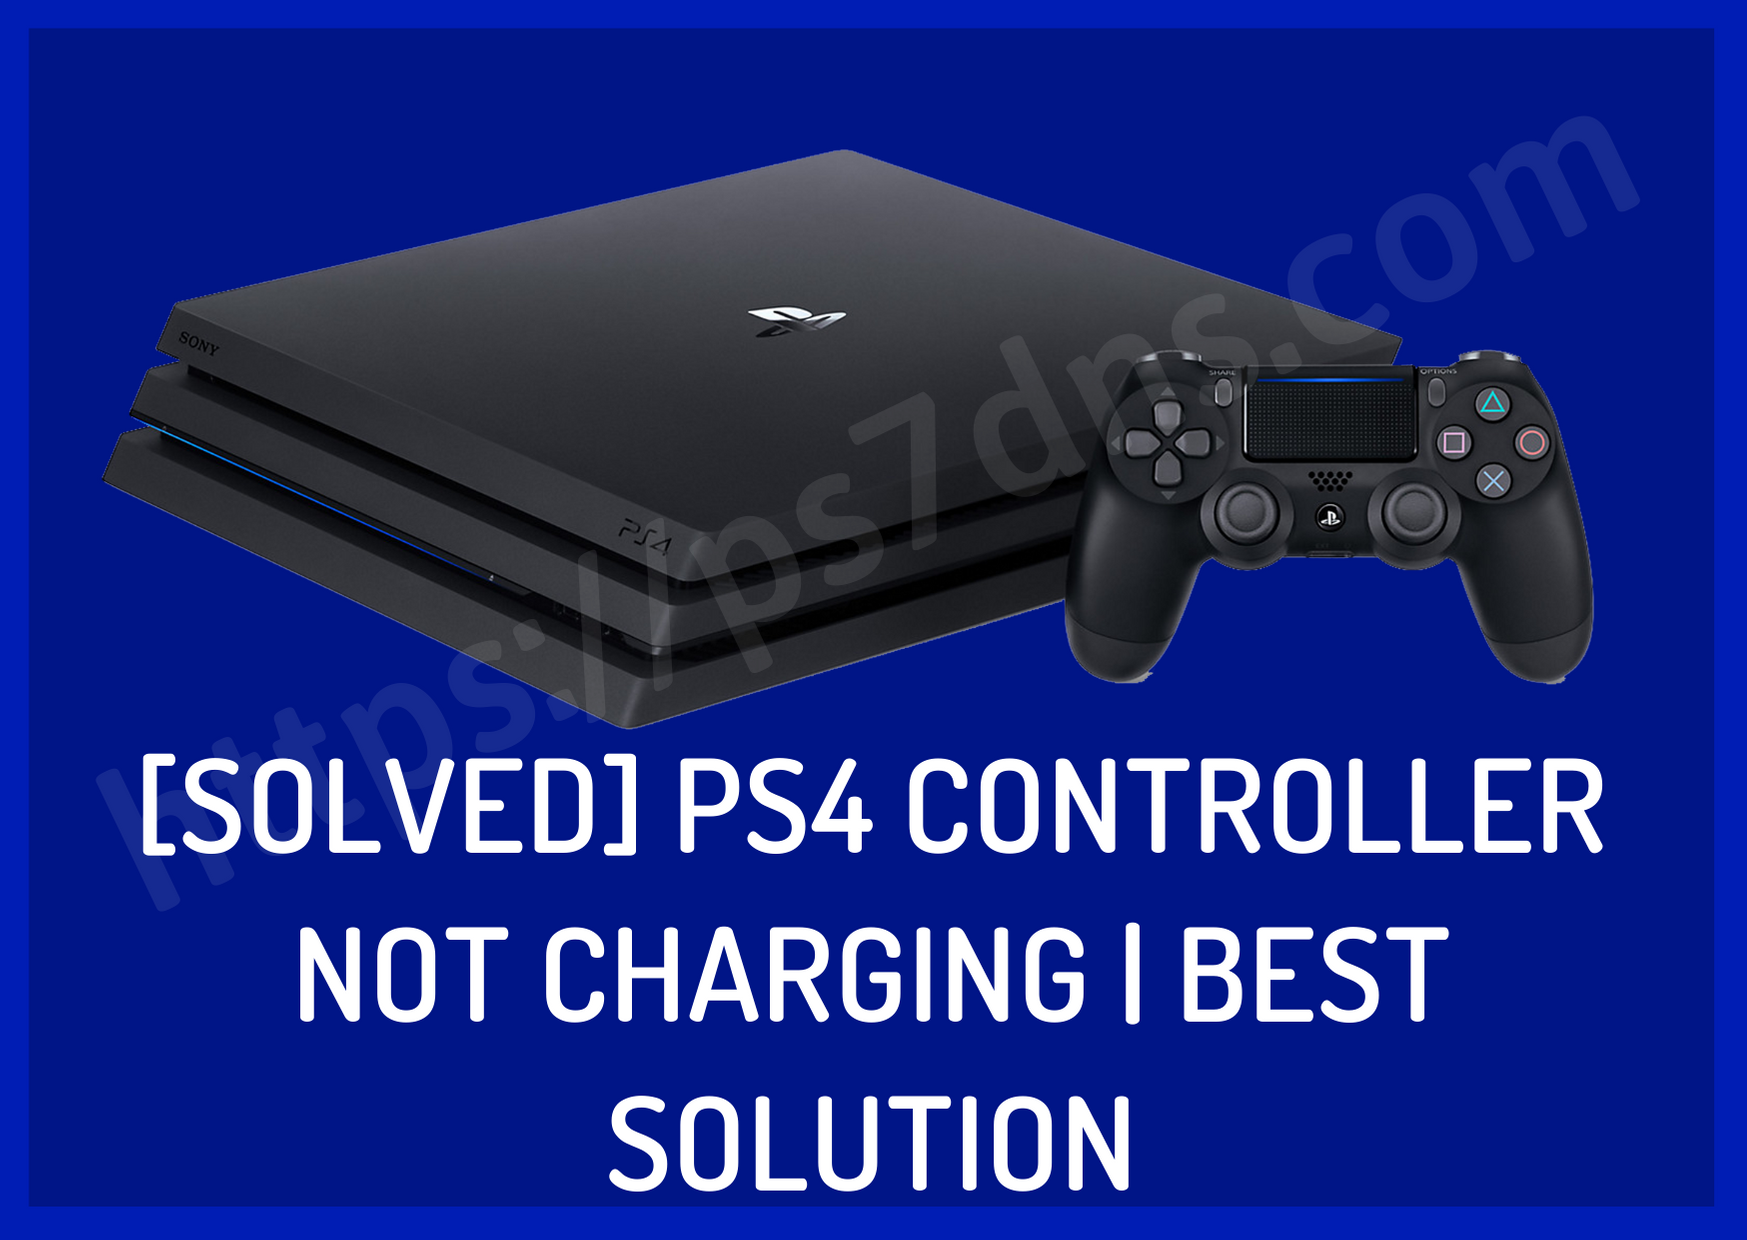 [Solved] PS4 Controller Not Charging | Best Solution